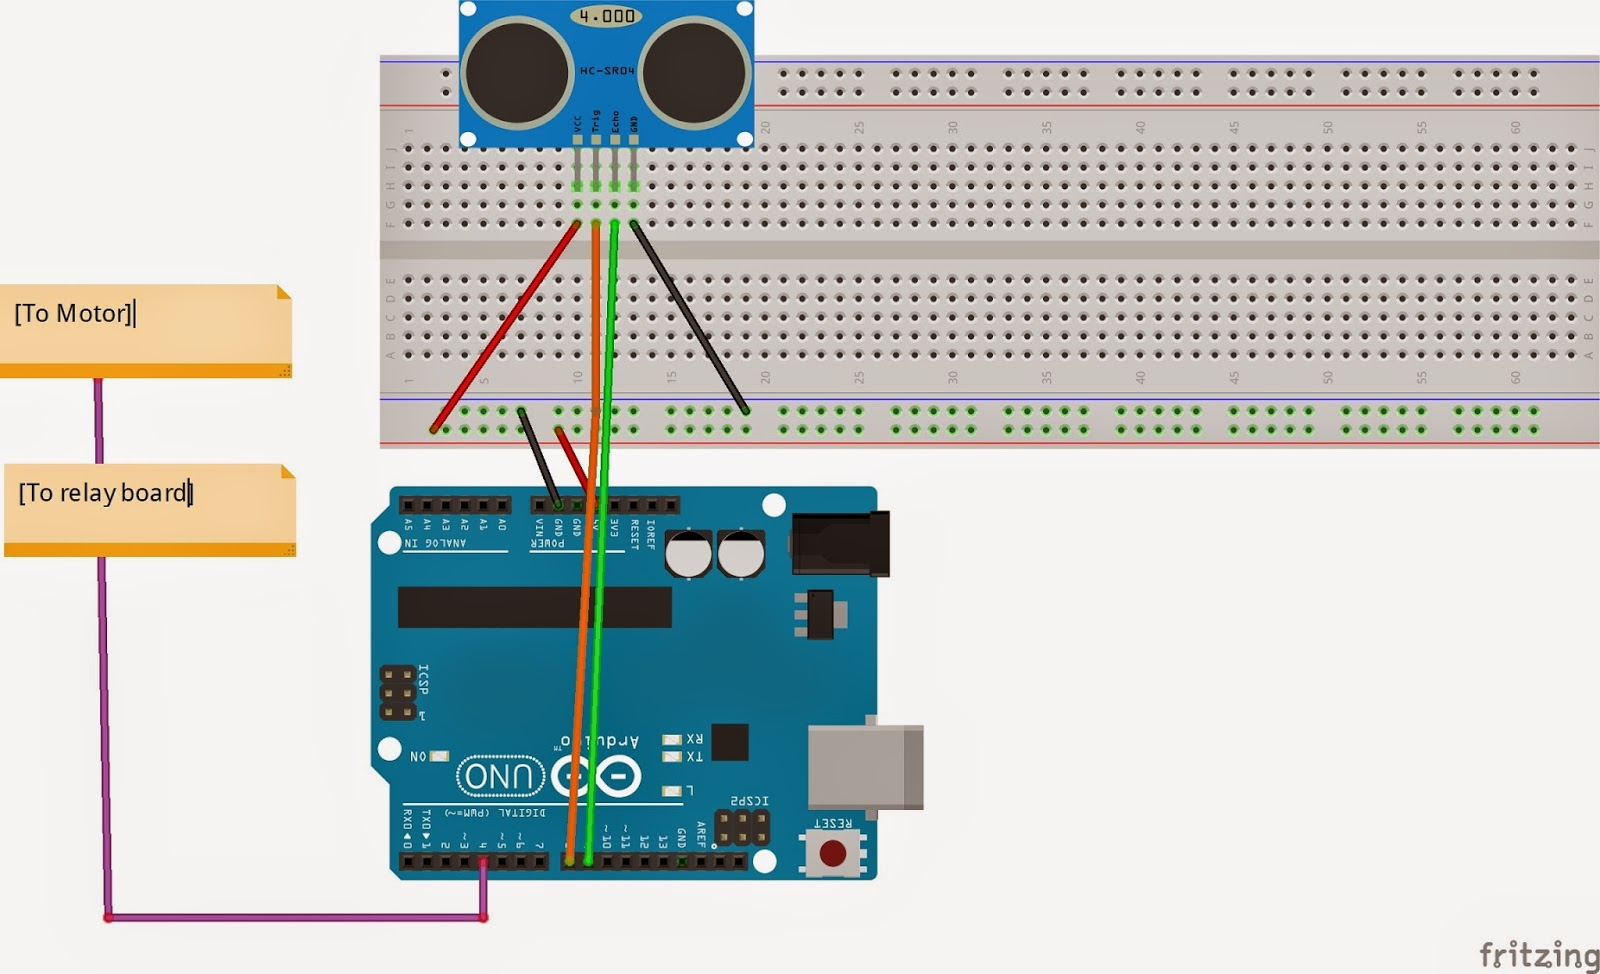 Pin Relay Wiring Diagram On Images Free Download Images - Circuit diagram of 5 pin relay